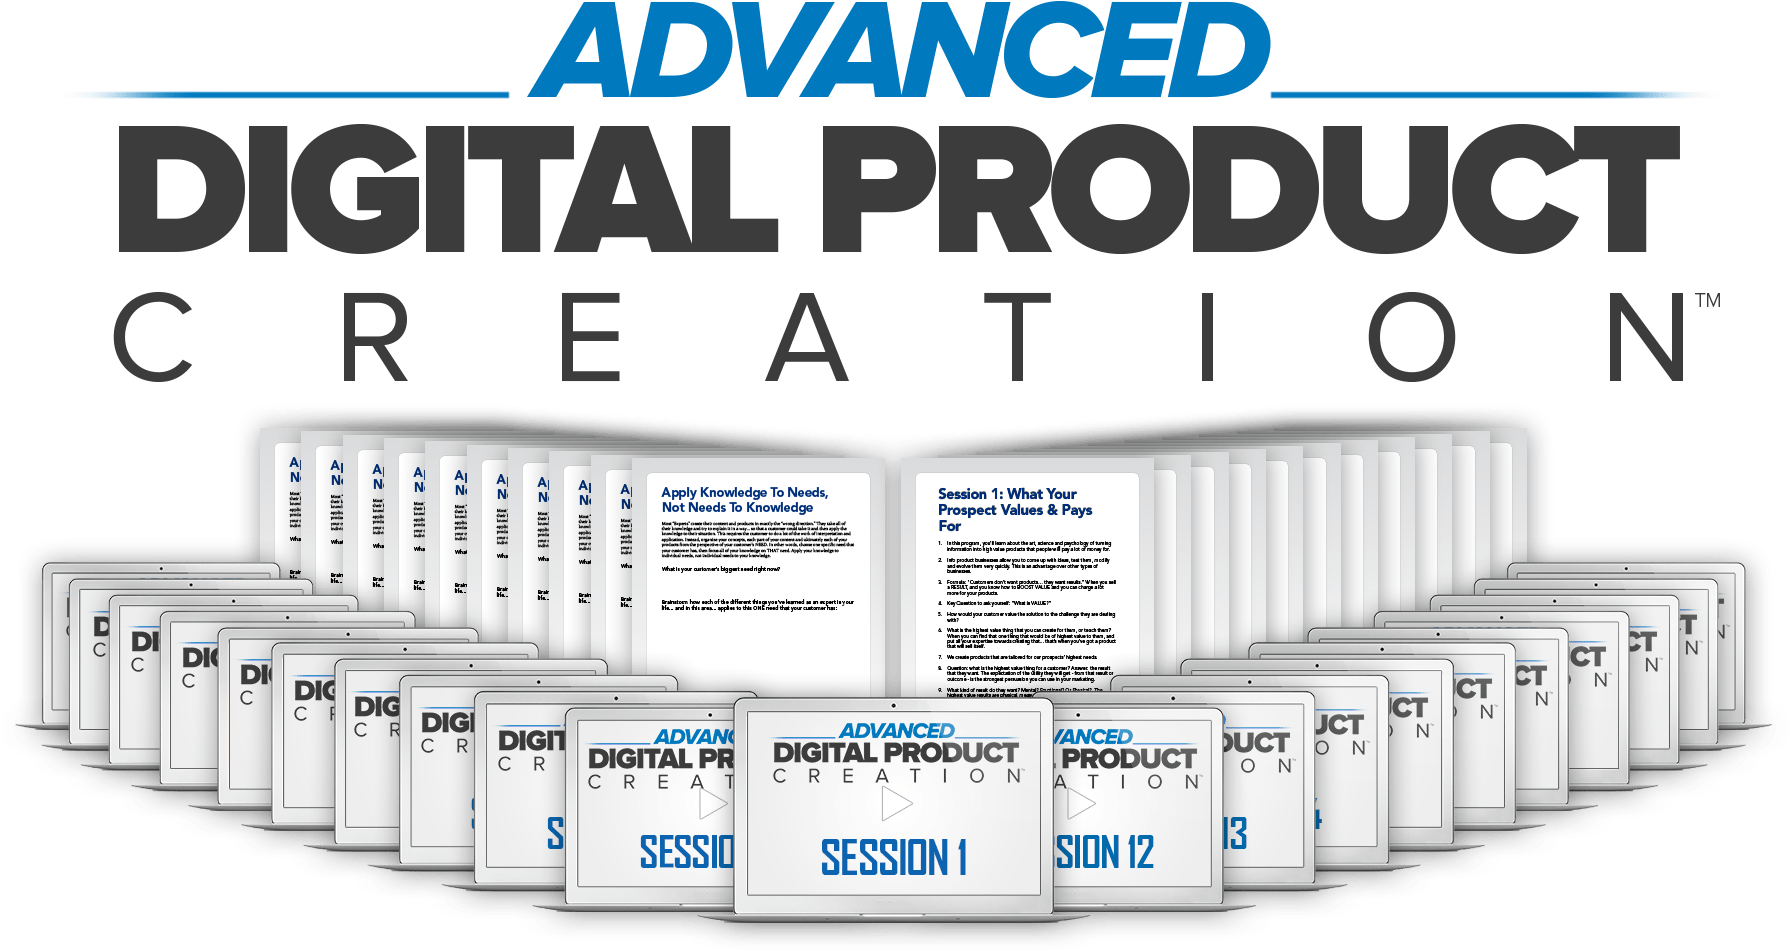 Advanced Digital Product Creation